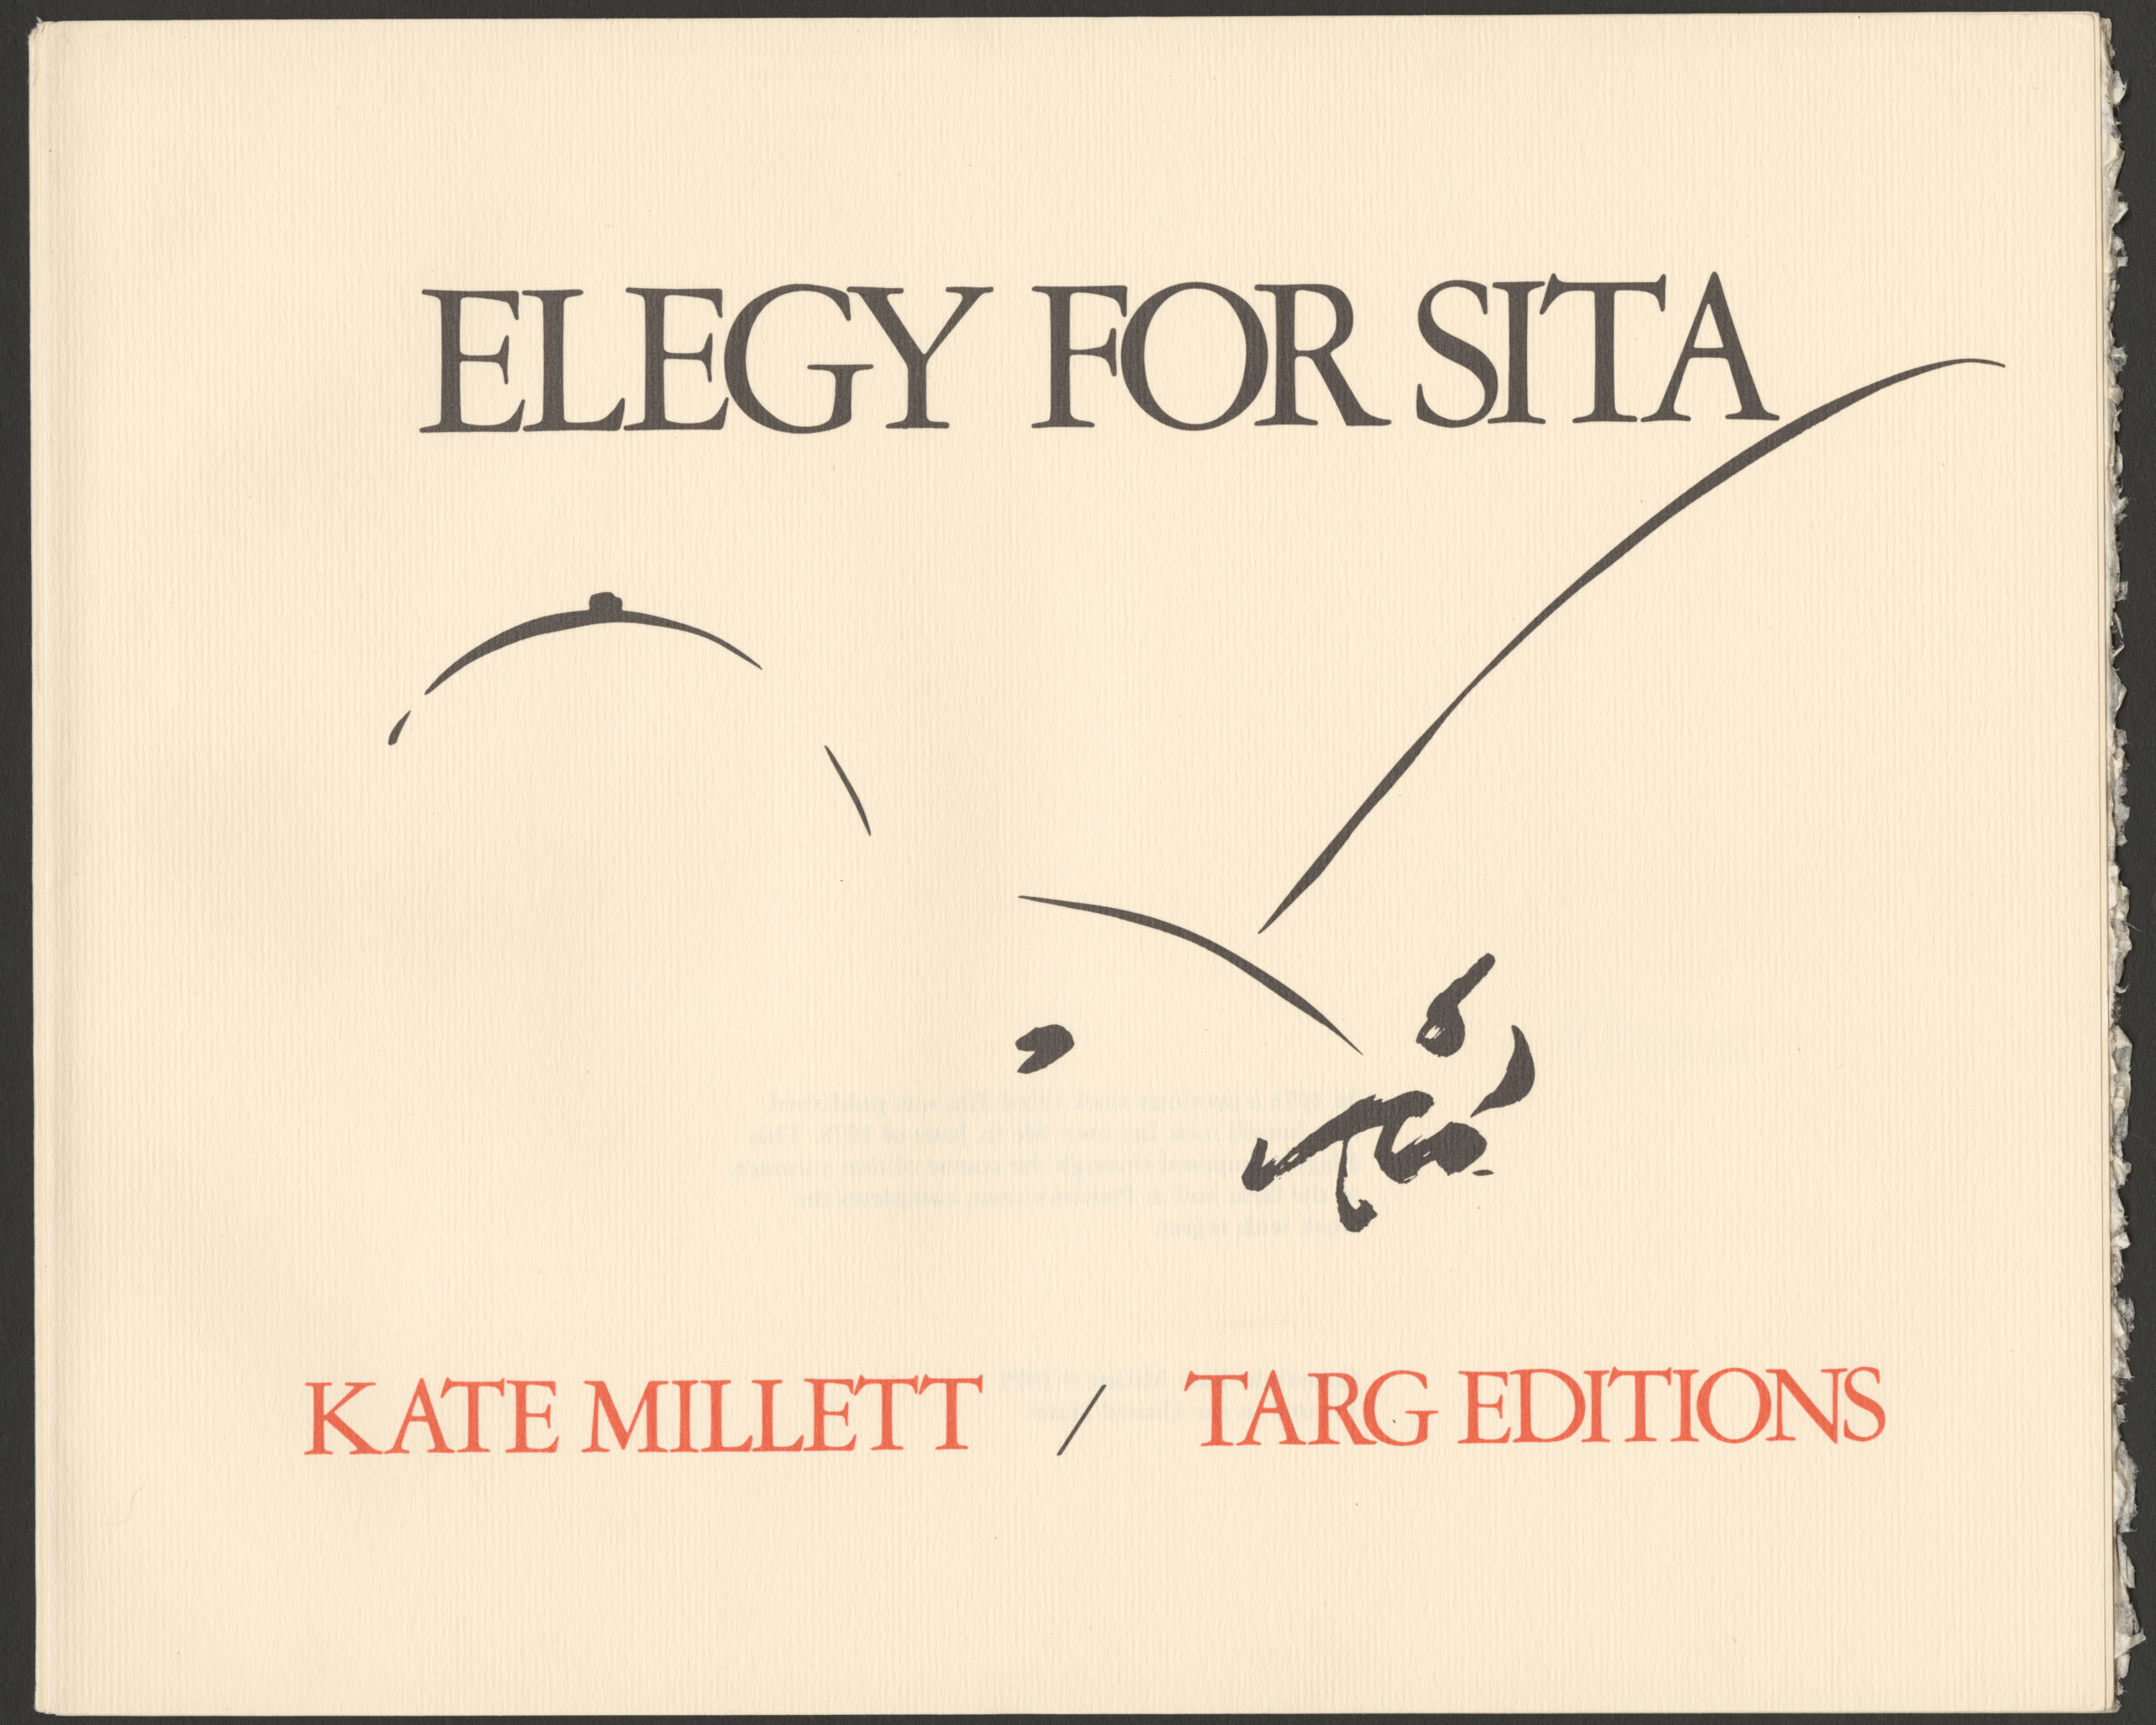 Elegy for Sita Title Page